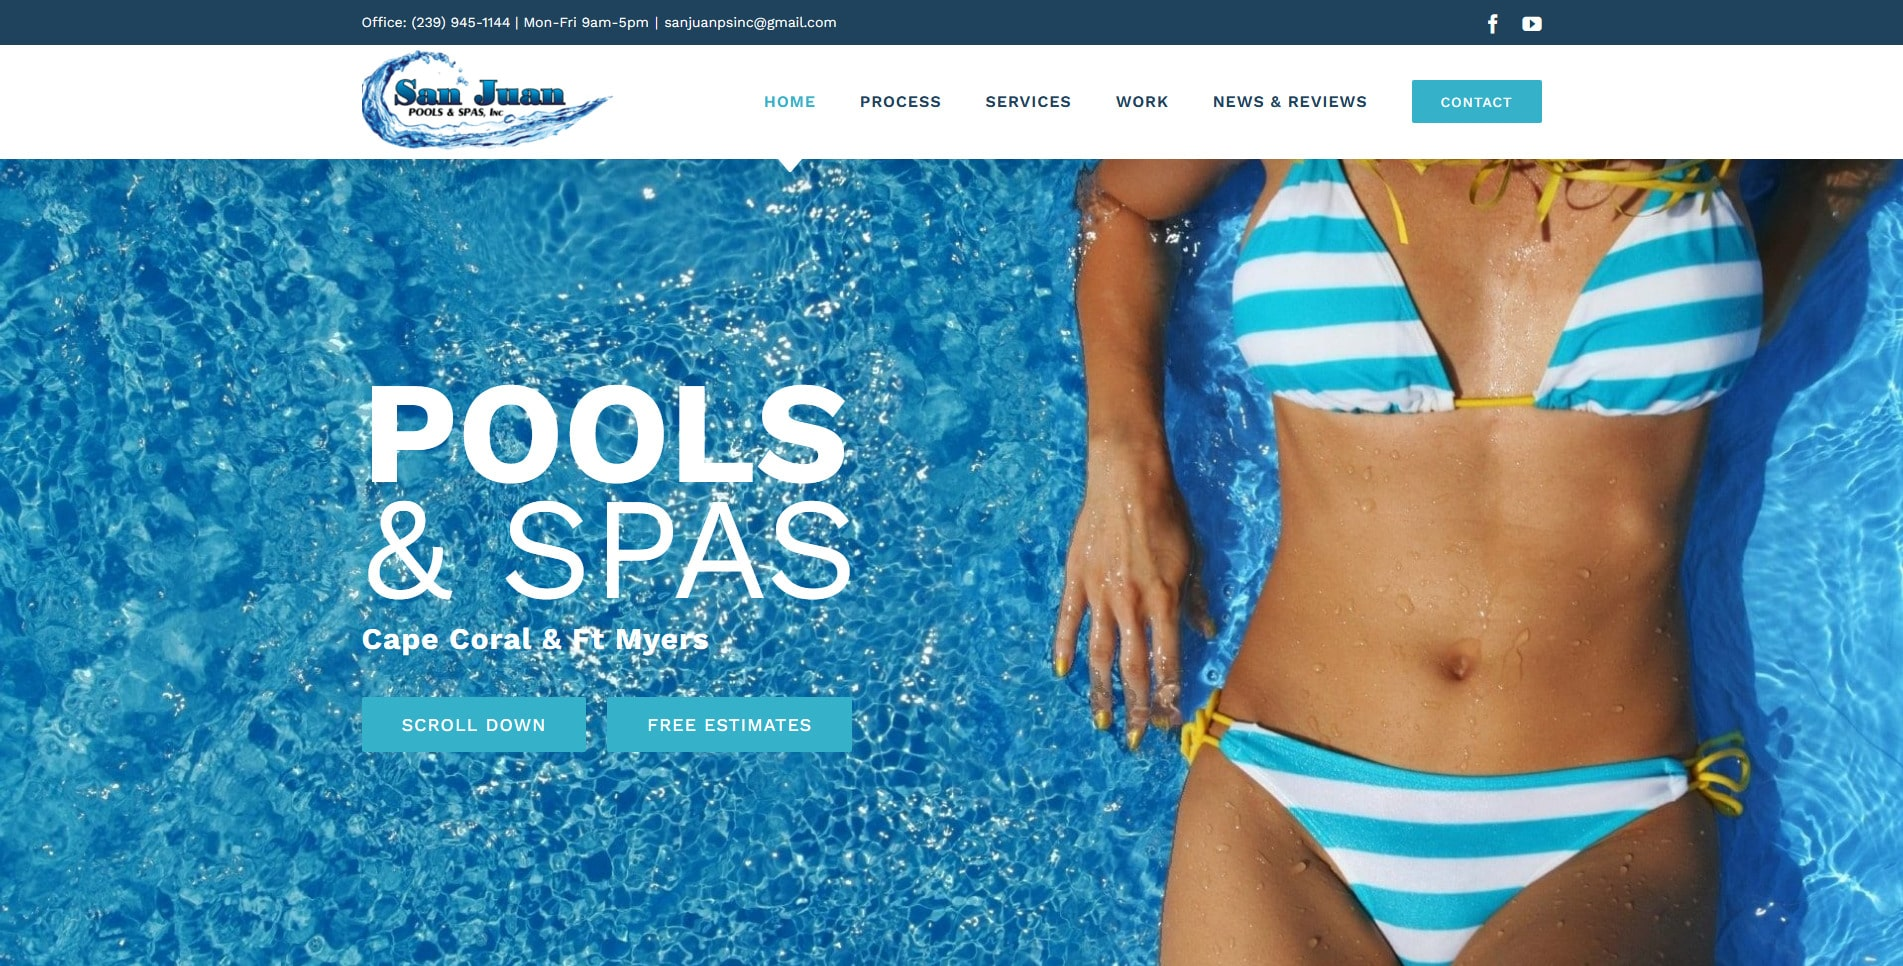 San Juan Pools & Spas Cape Coral